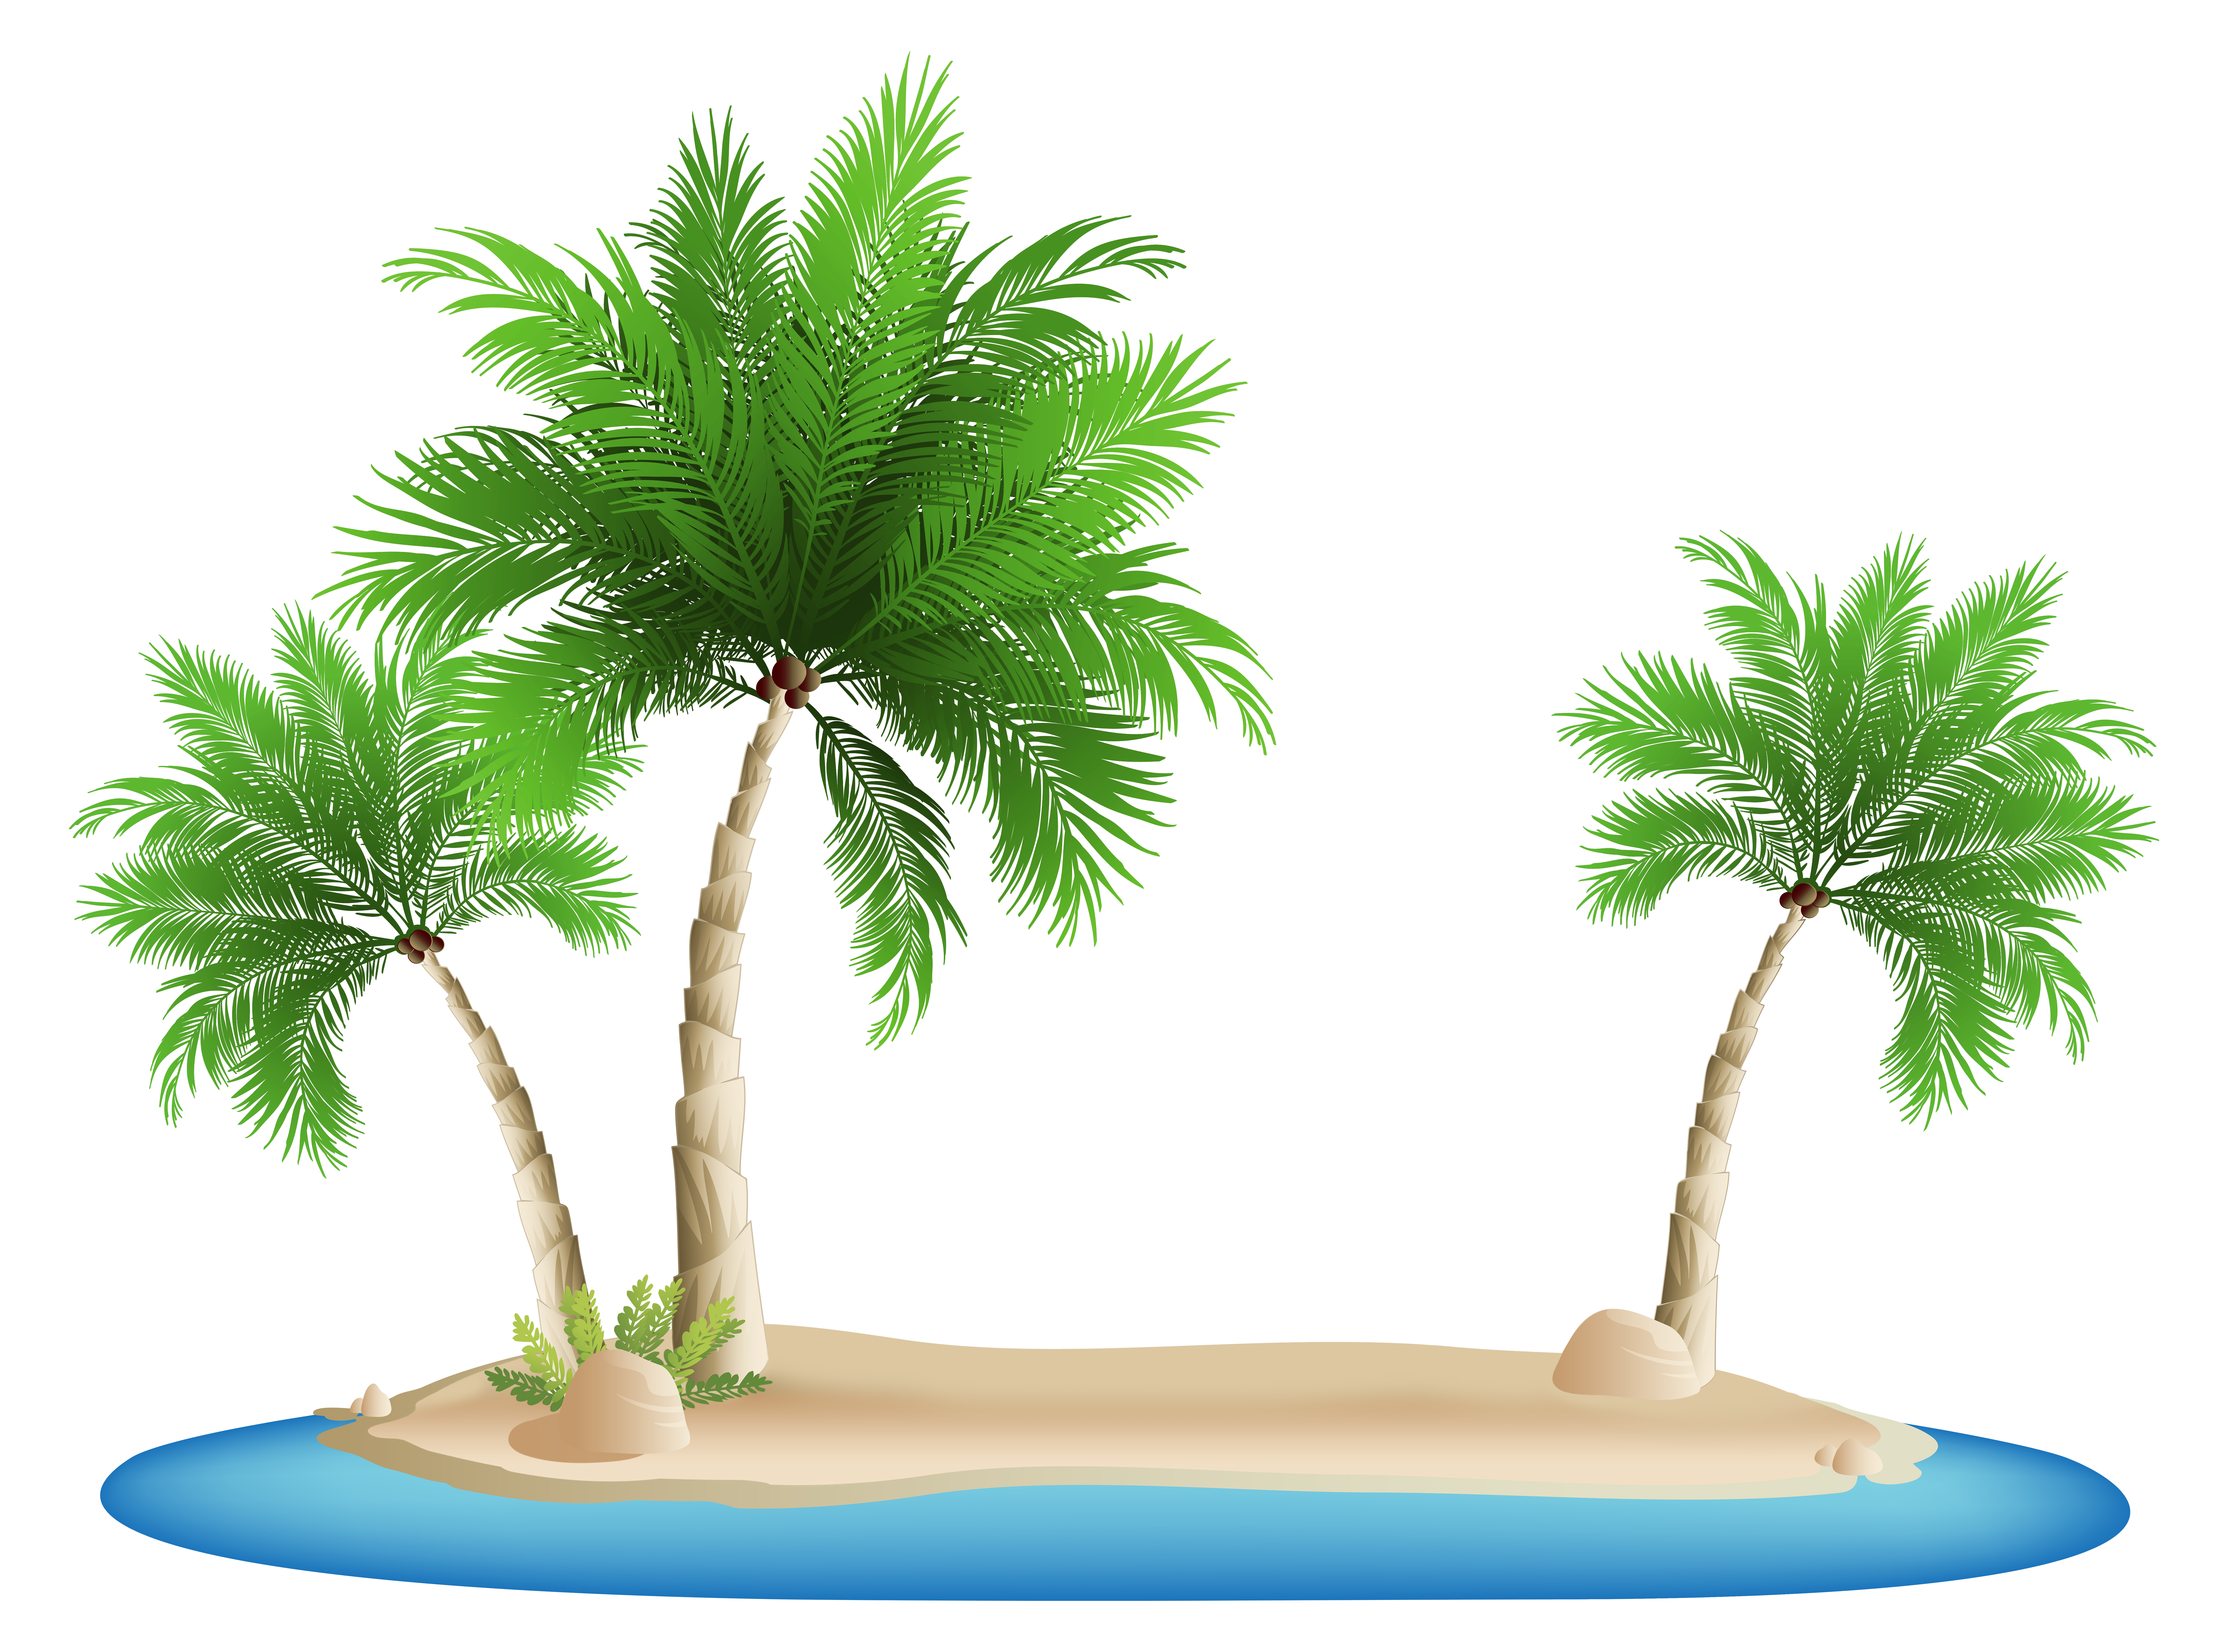 Island clipart #1, Download drawings